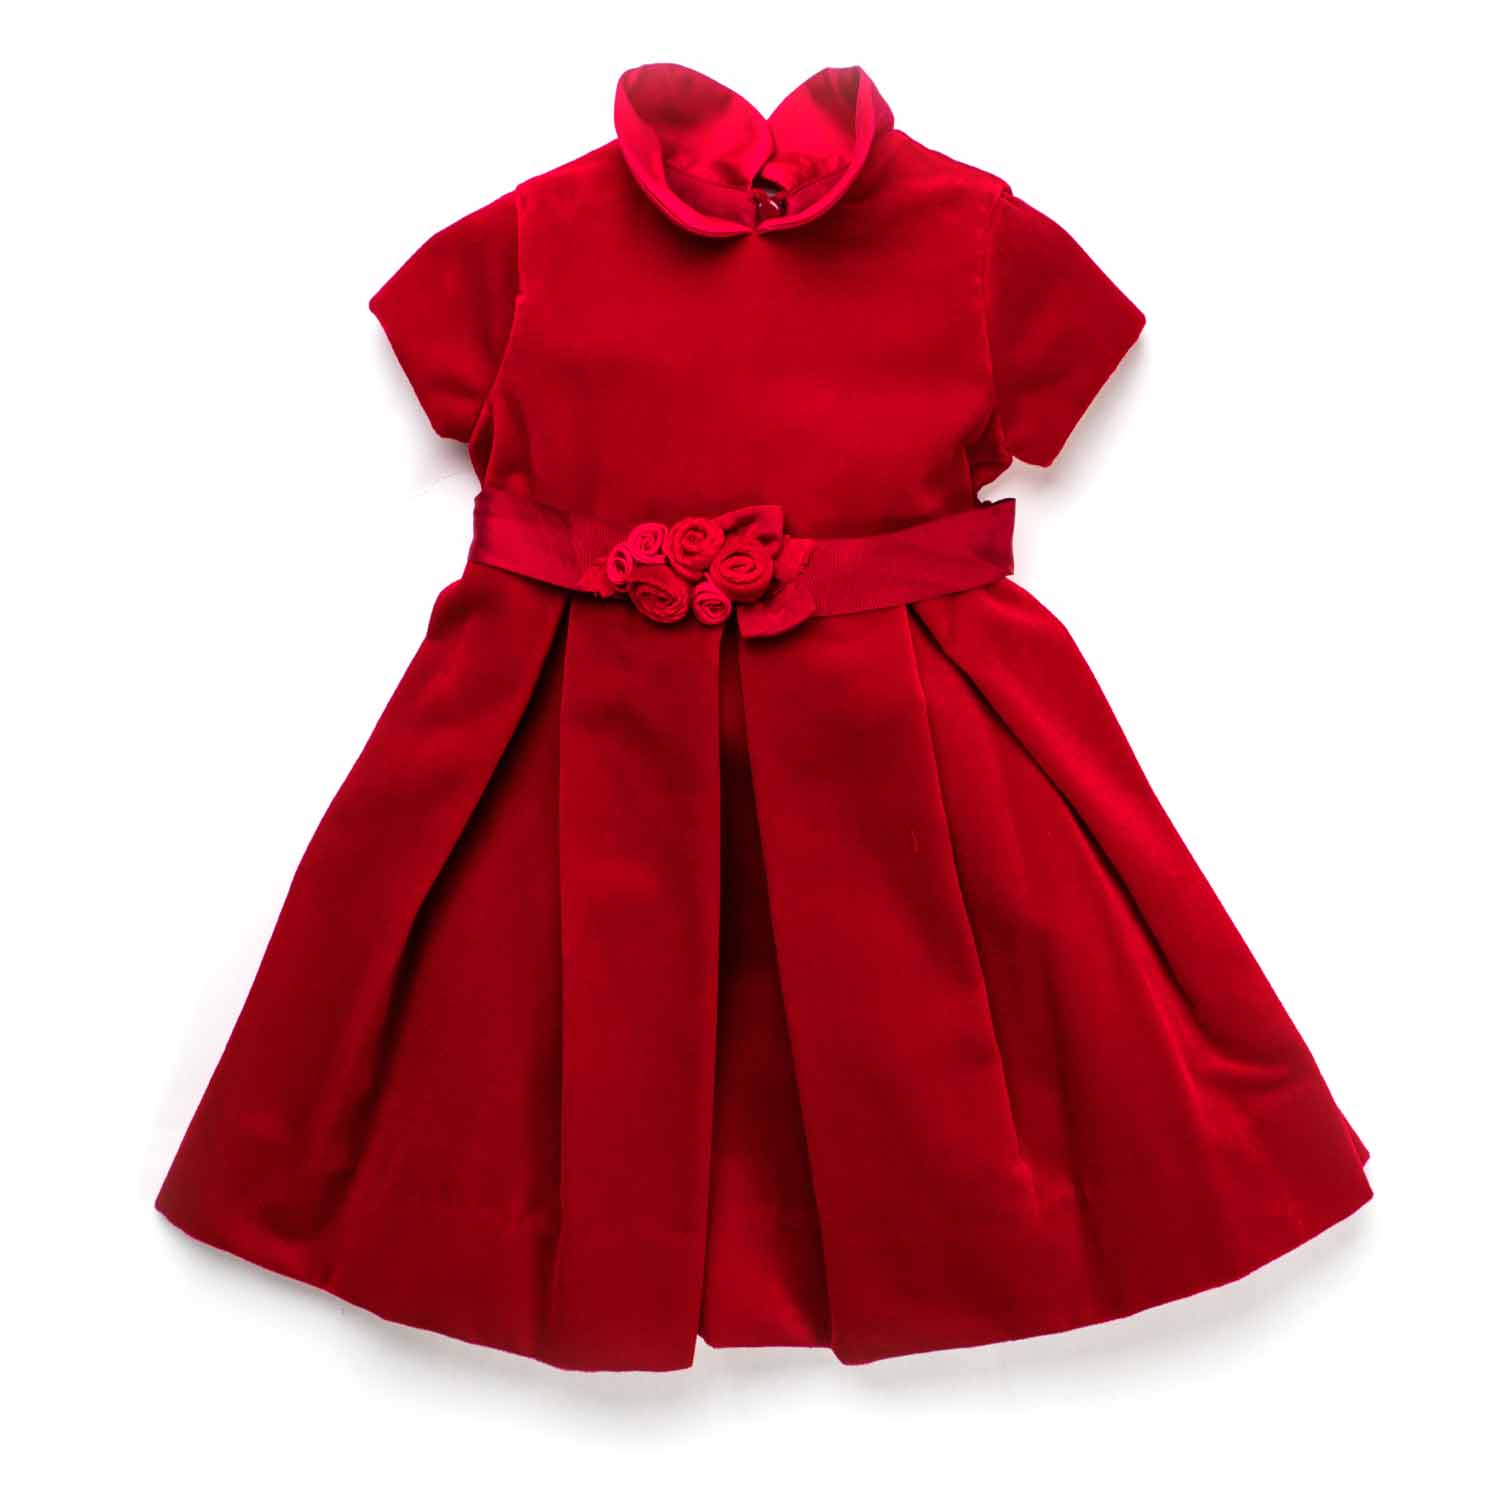 low priced a58a5 127d8 Abito Party Velluto Rosso